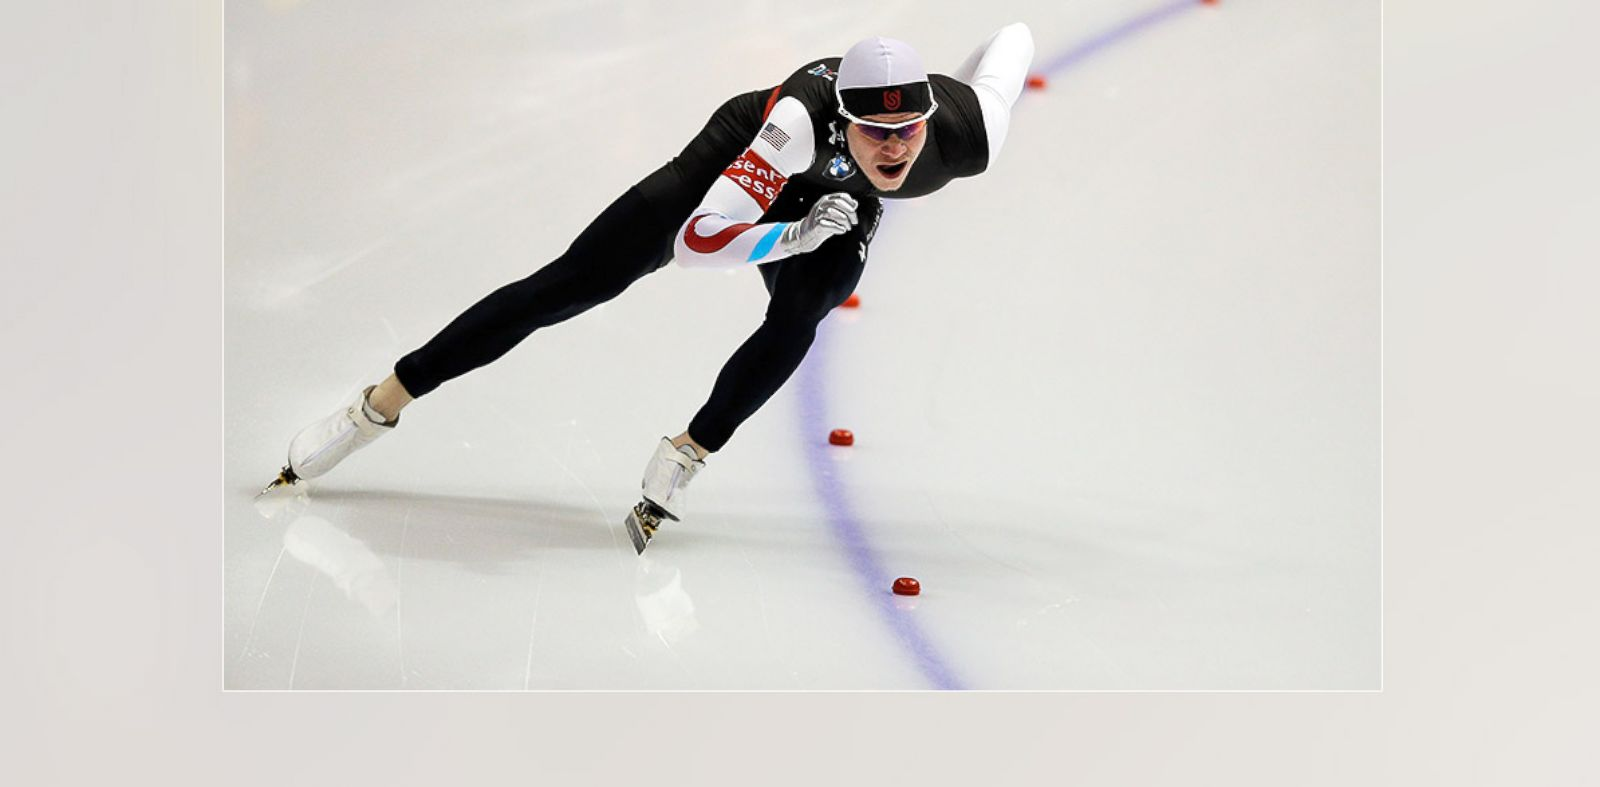 PHOTO: Tucker Fredricks of USA competes in the 500m Men race on Day 3 of the Essent ISU World Cup Speed Skating Championships 2013, March 10, 2013 in Heerenveen, Netherlands.